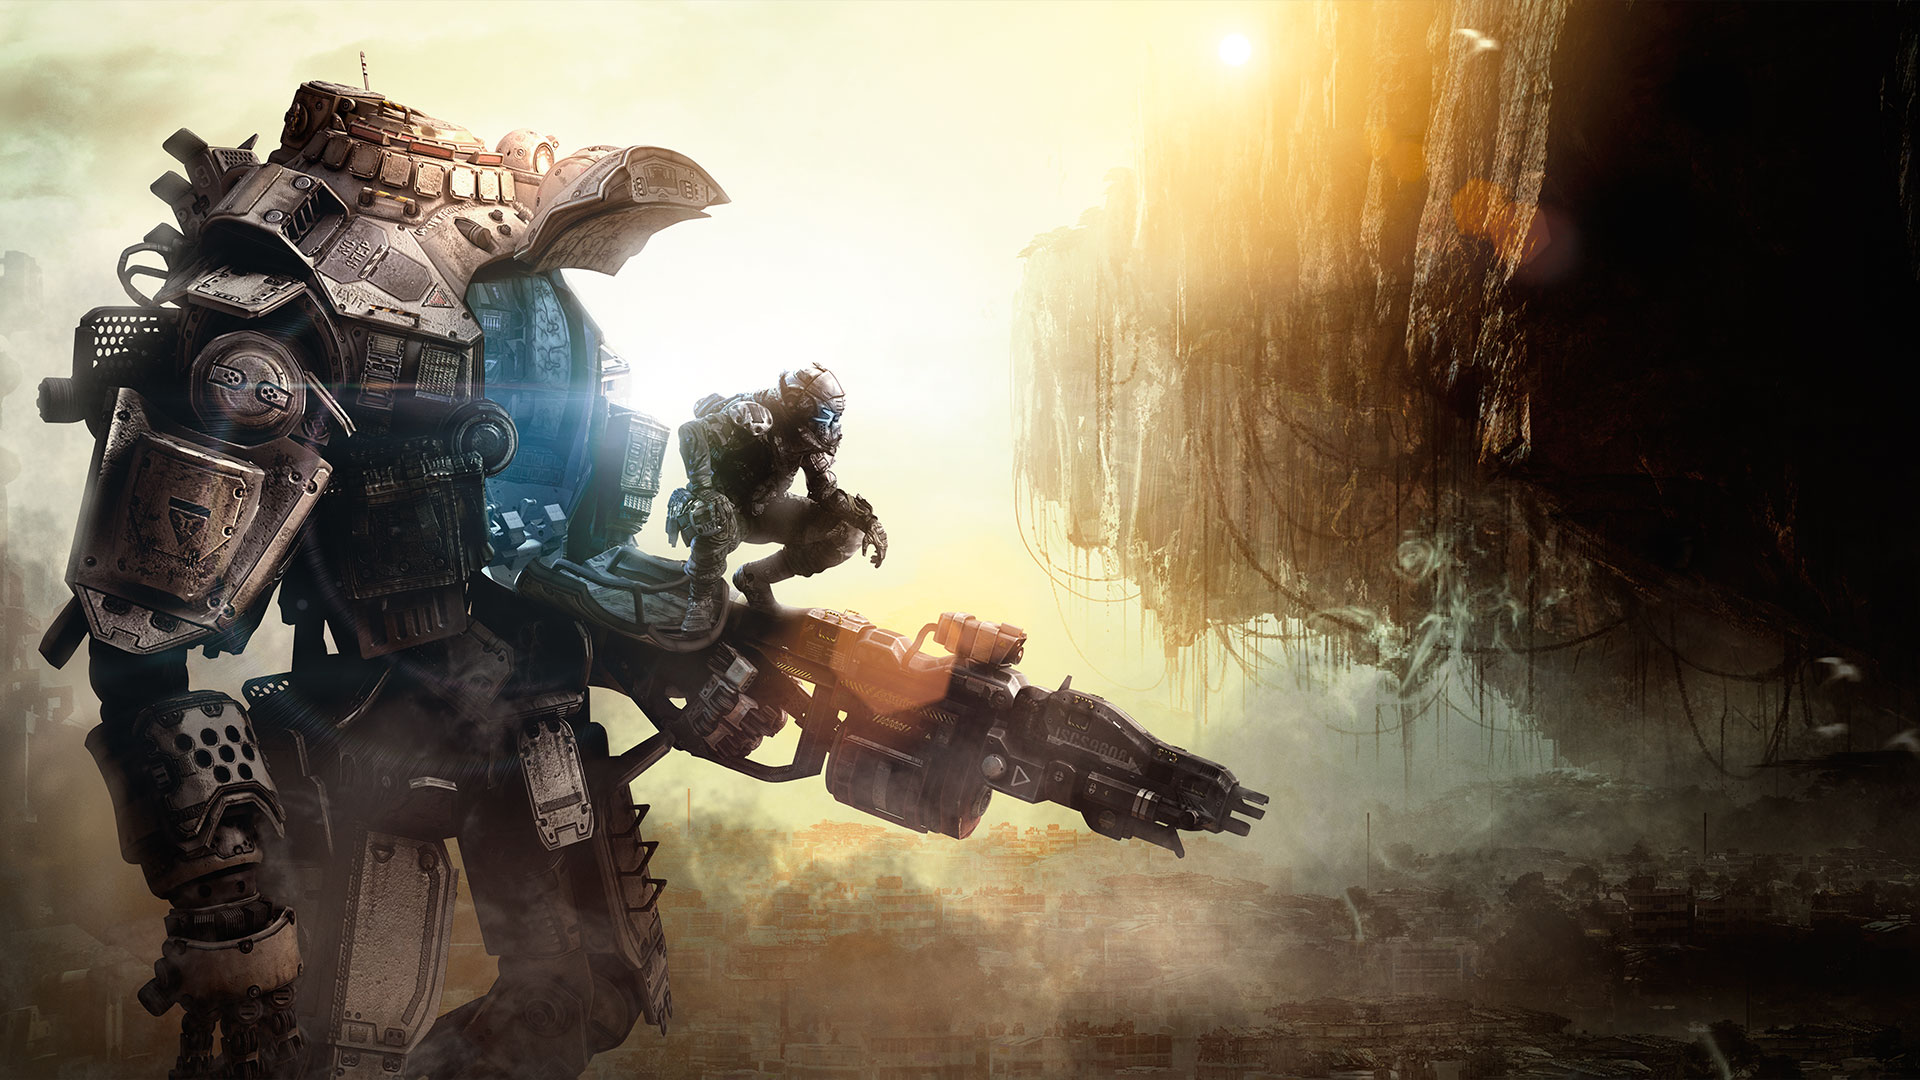 Gamescom Preview: Titanfall